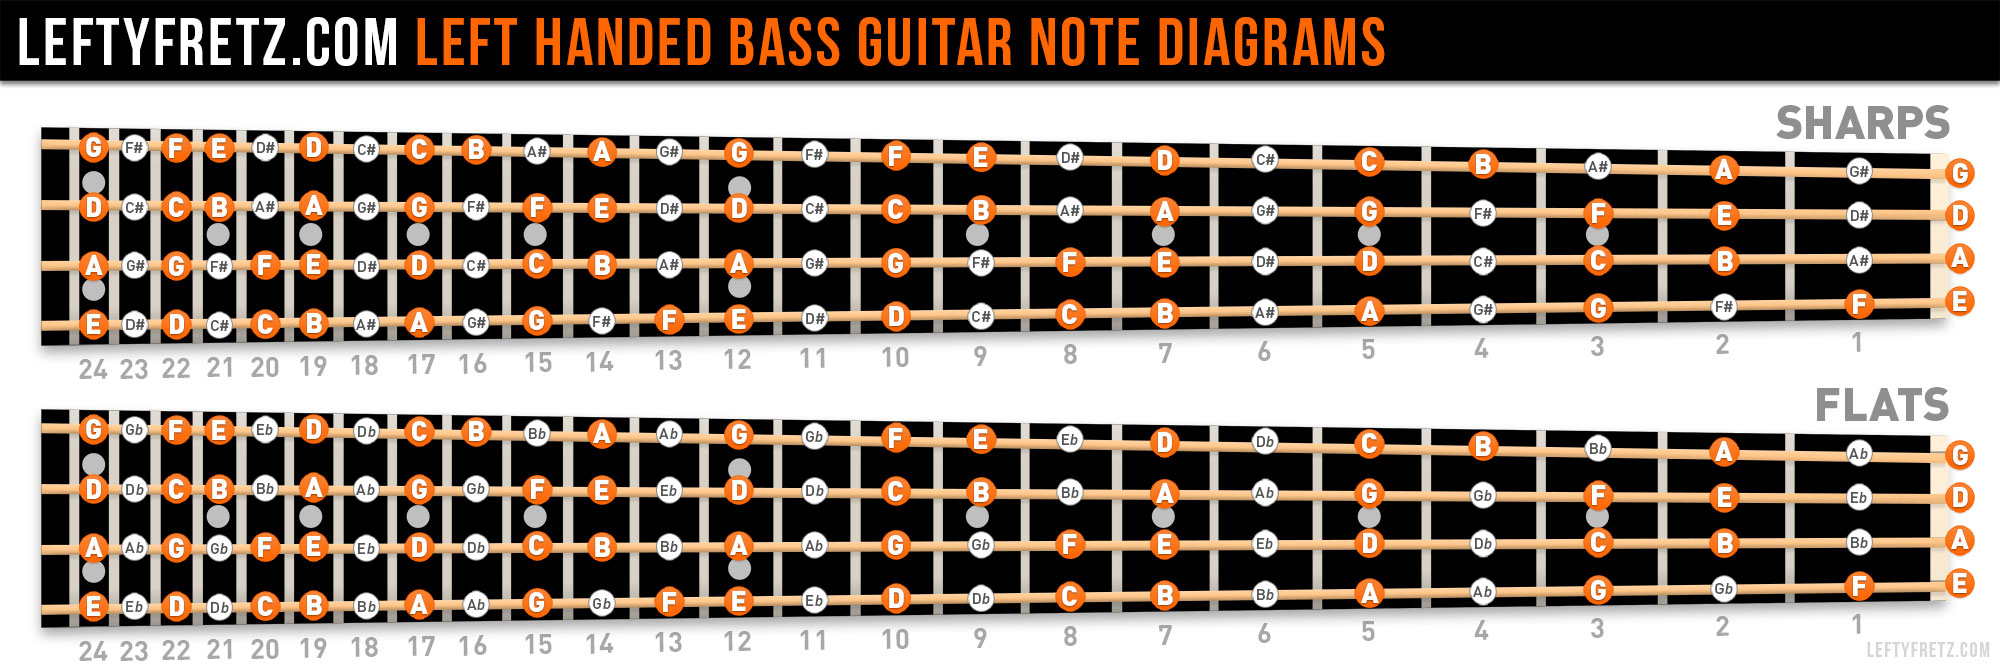 left handed bass guitar fretboard diagram. Black Bedroom Furniture Sets. Home Design Ideas